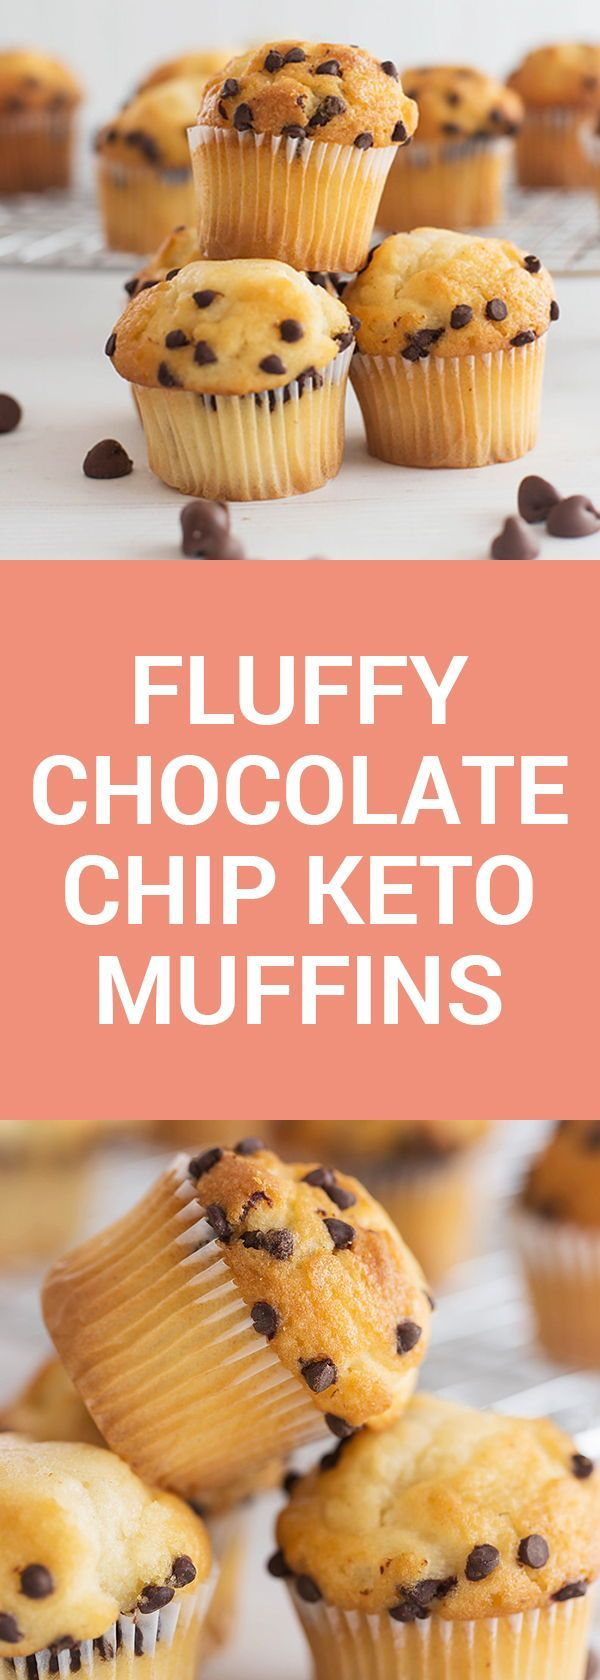 Fluffy Chocolate Chip Keto Muffins #lowcarbrecipes